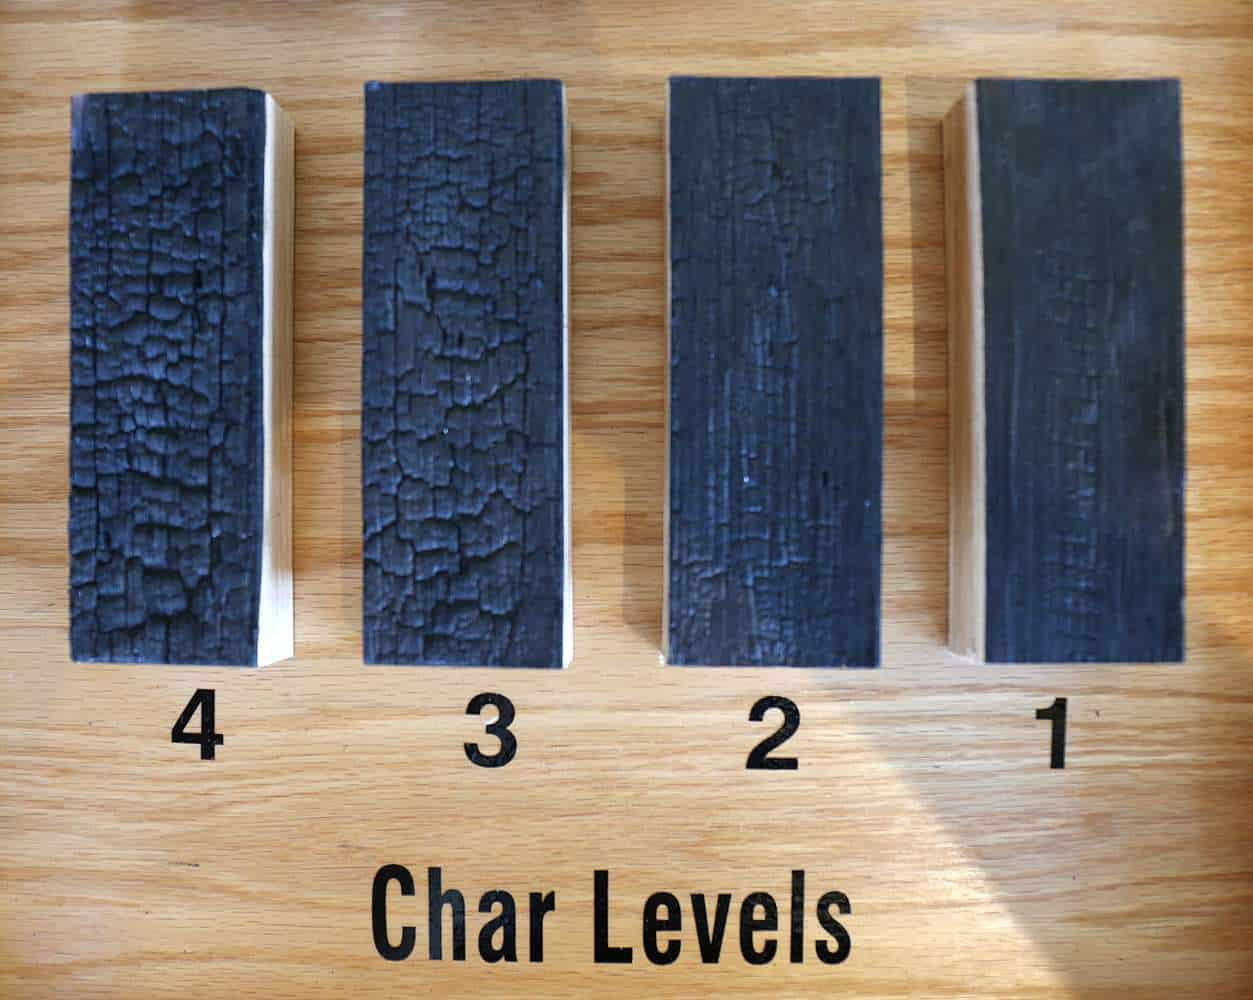 Char levels. Image via Wild Turkey.